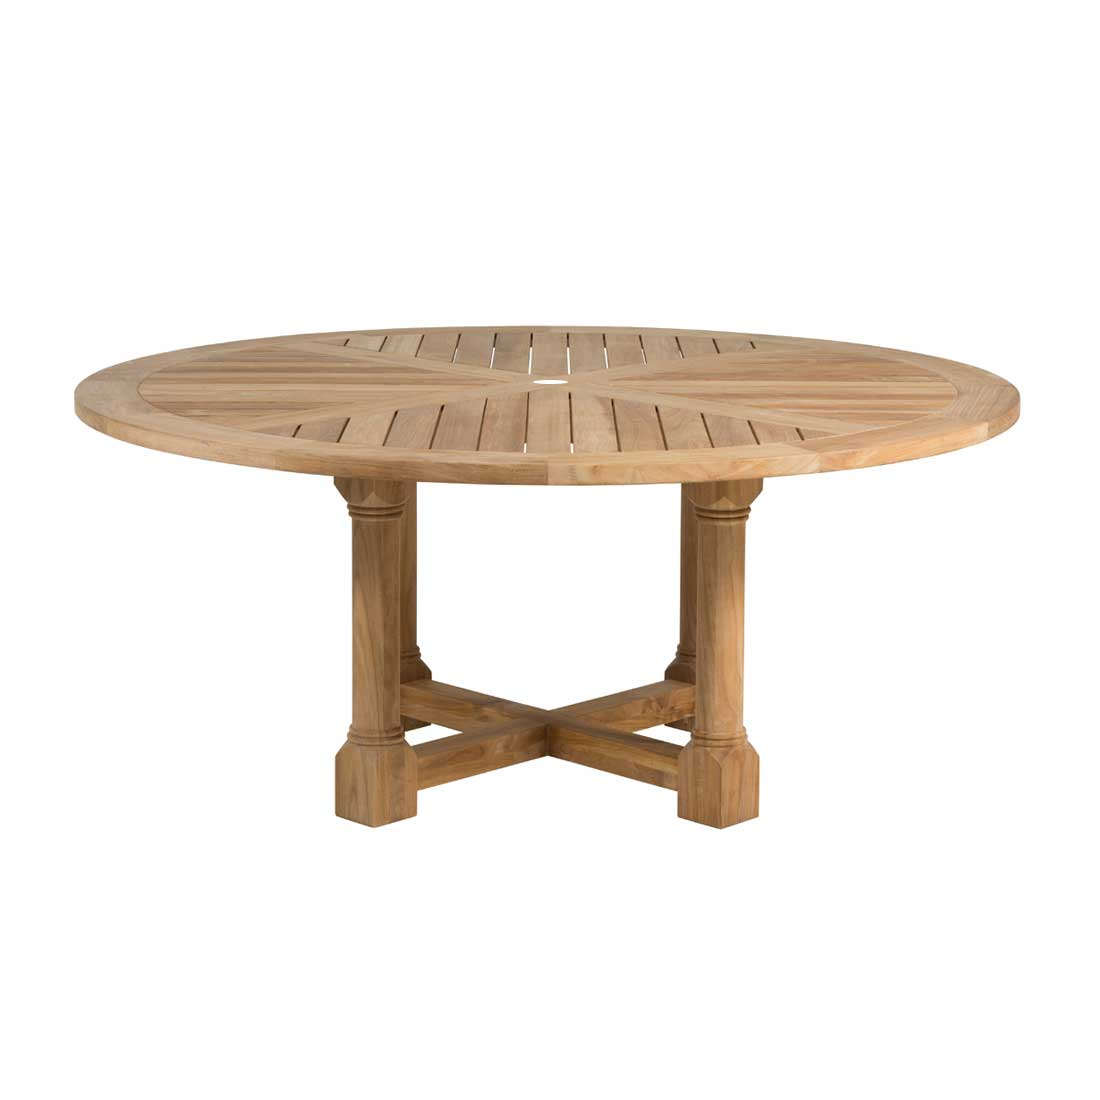 72 round dining table oversized round lakeshore 72